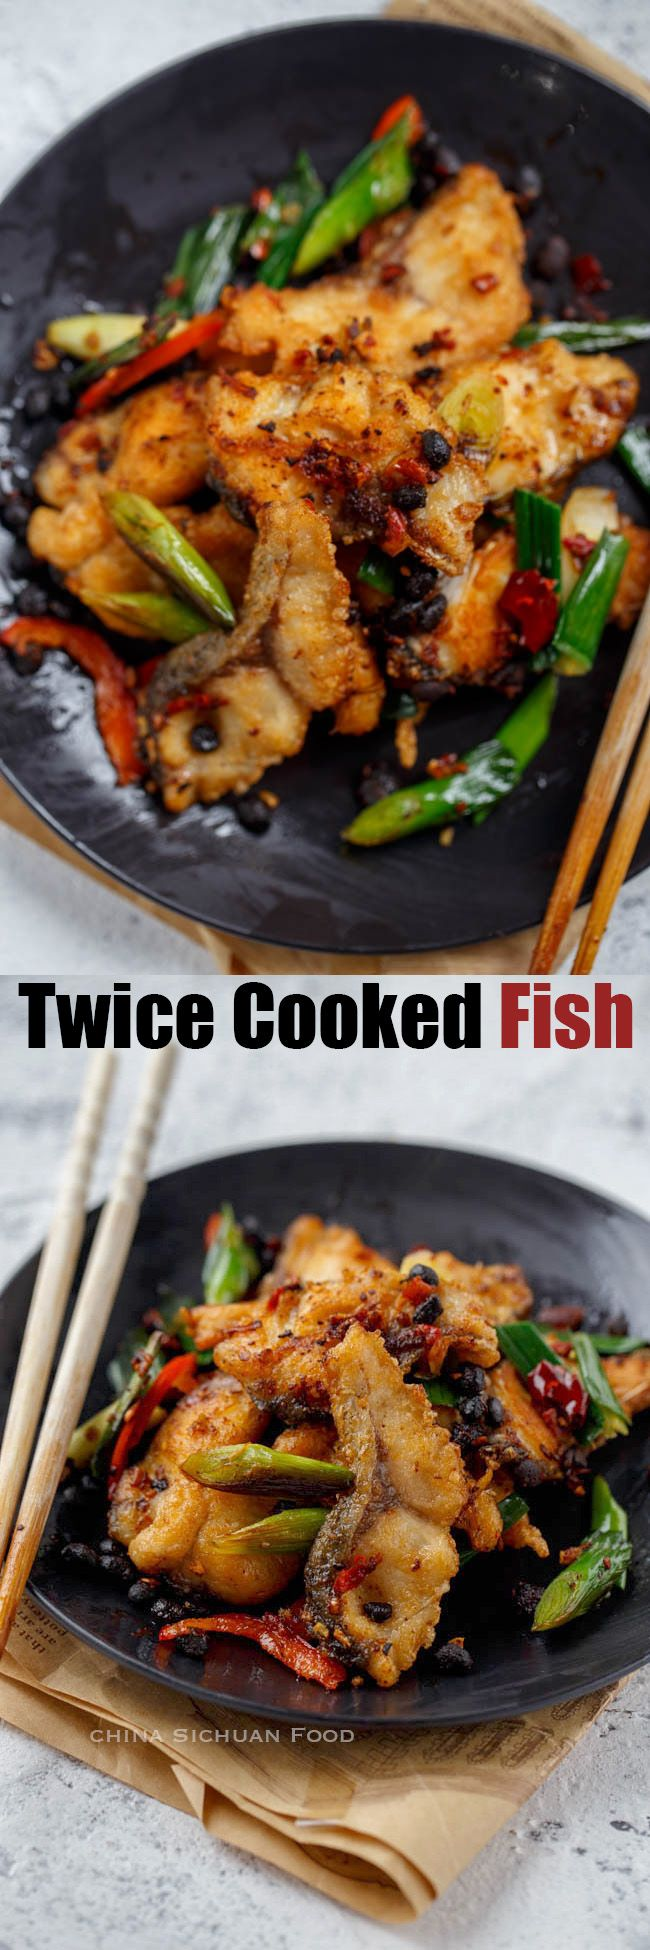 Twice cooked fish